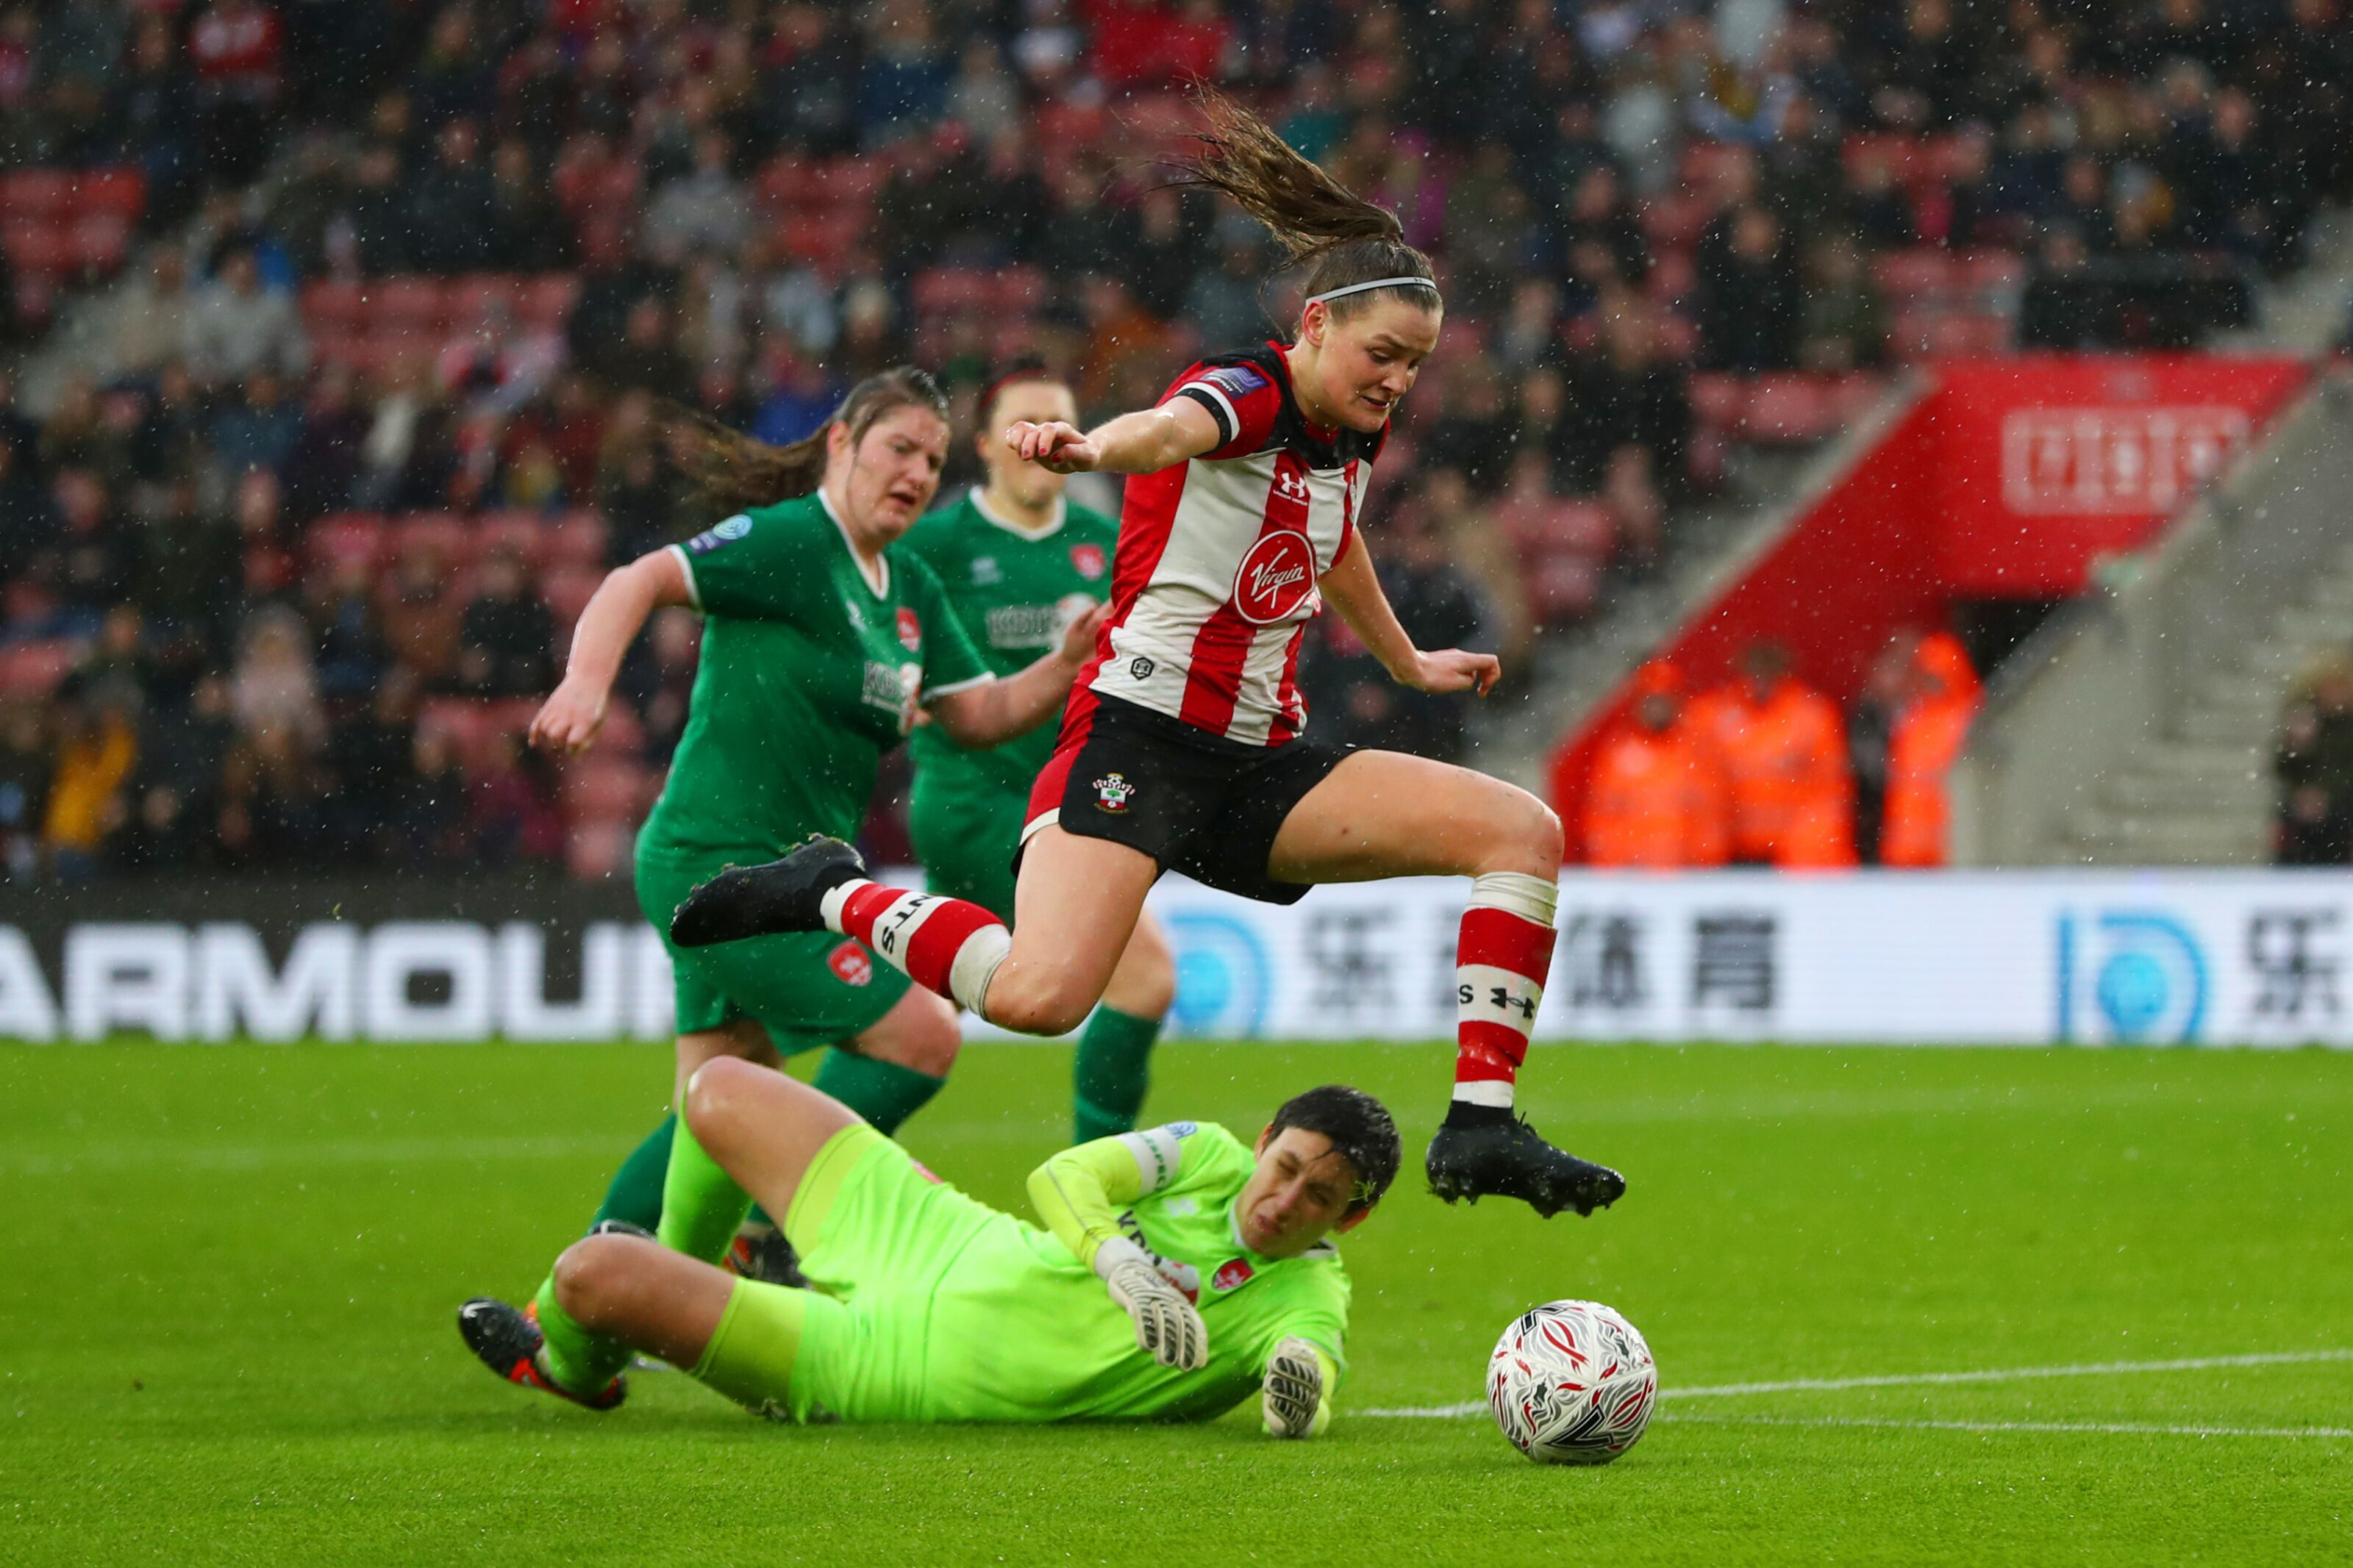 Southampton: Saints Women make St Mary's debut in front of big crowd